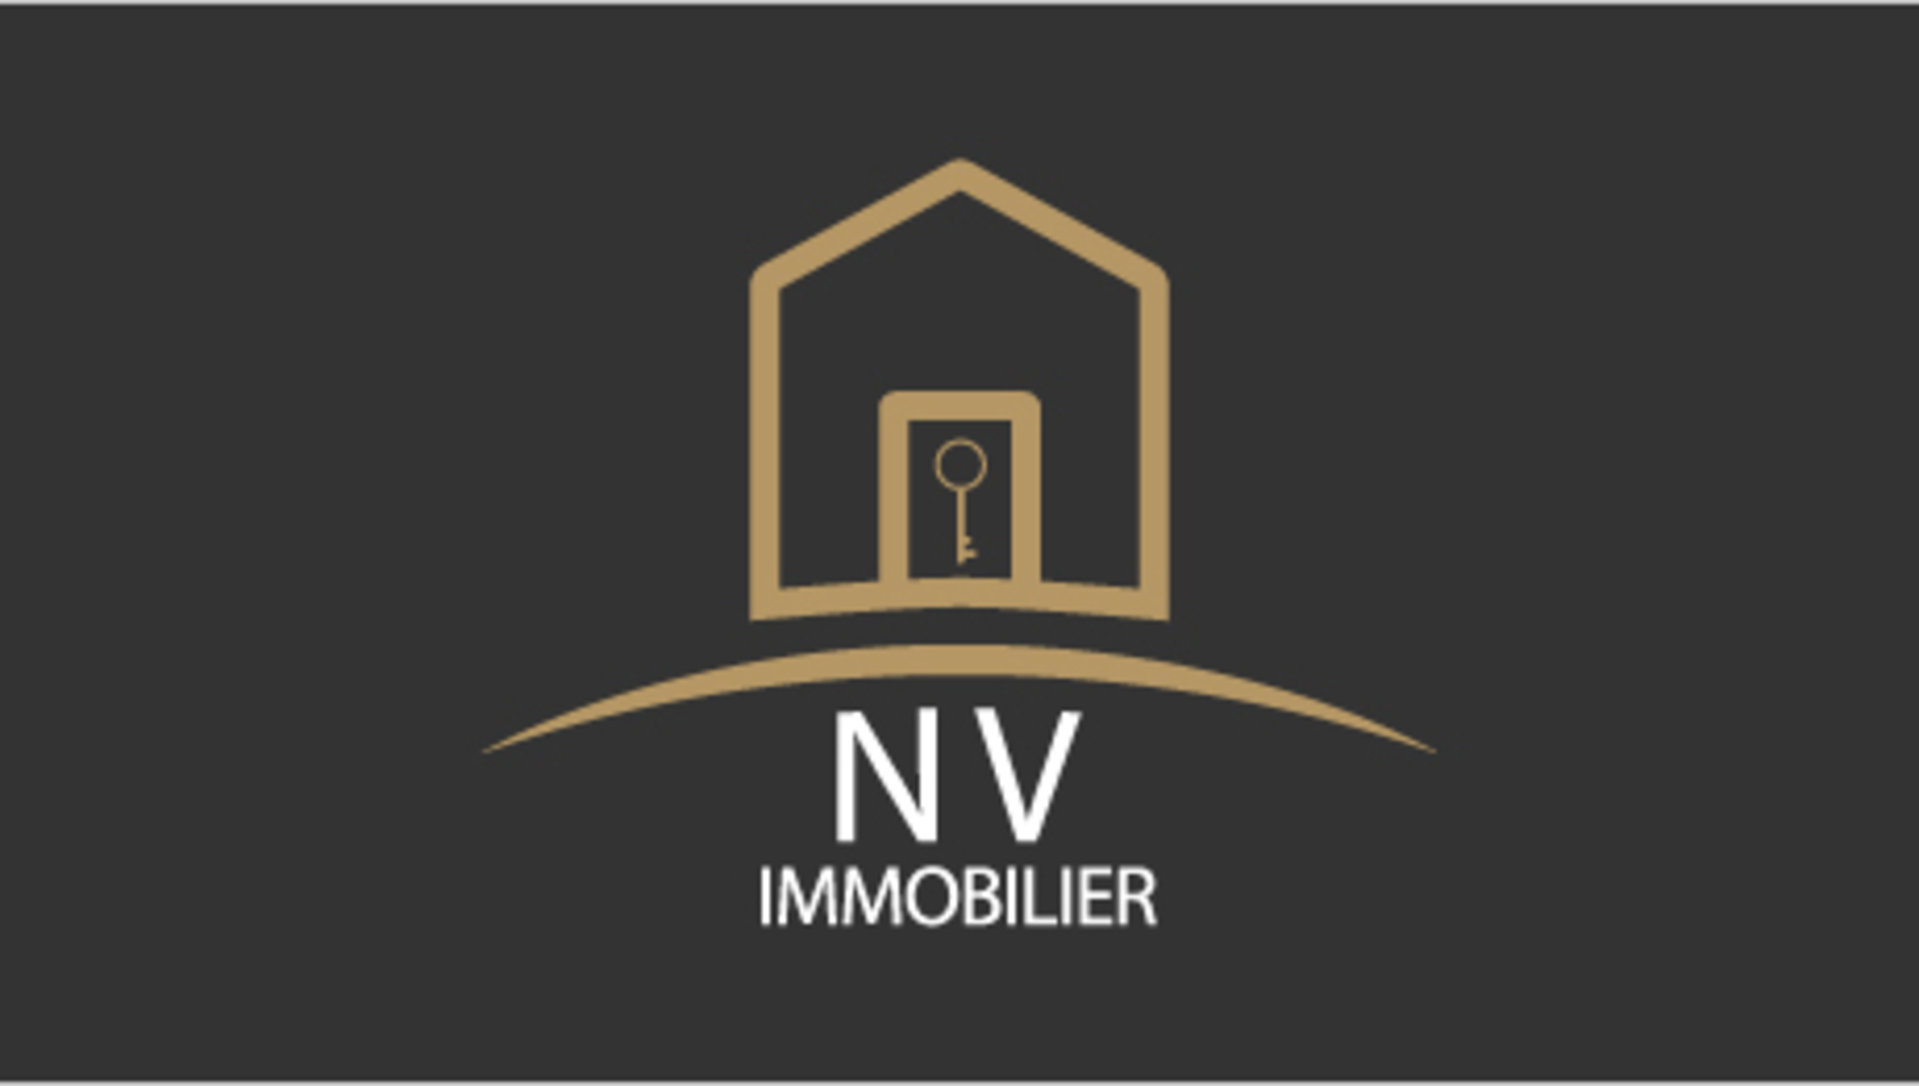 NV Immobilier